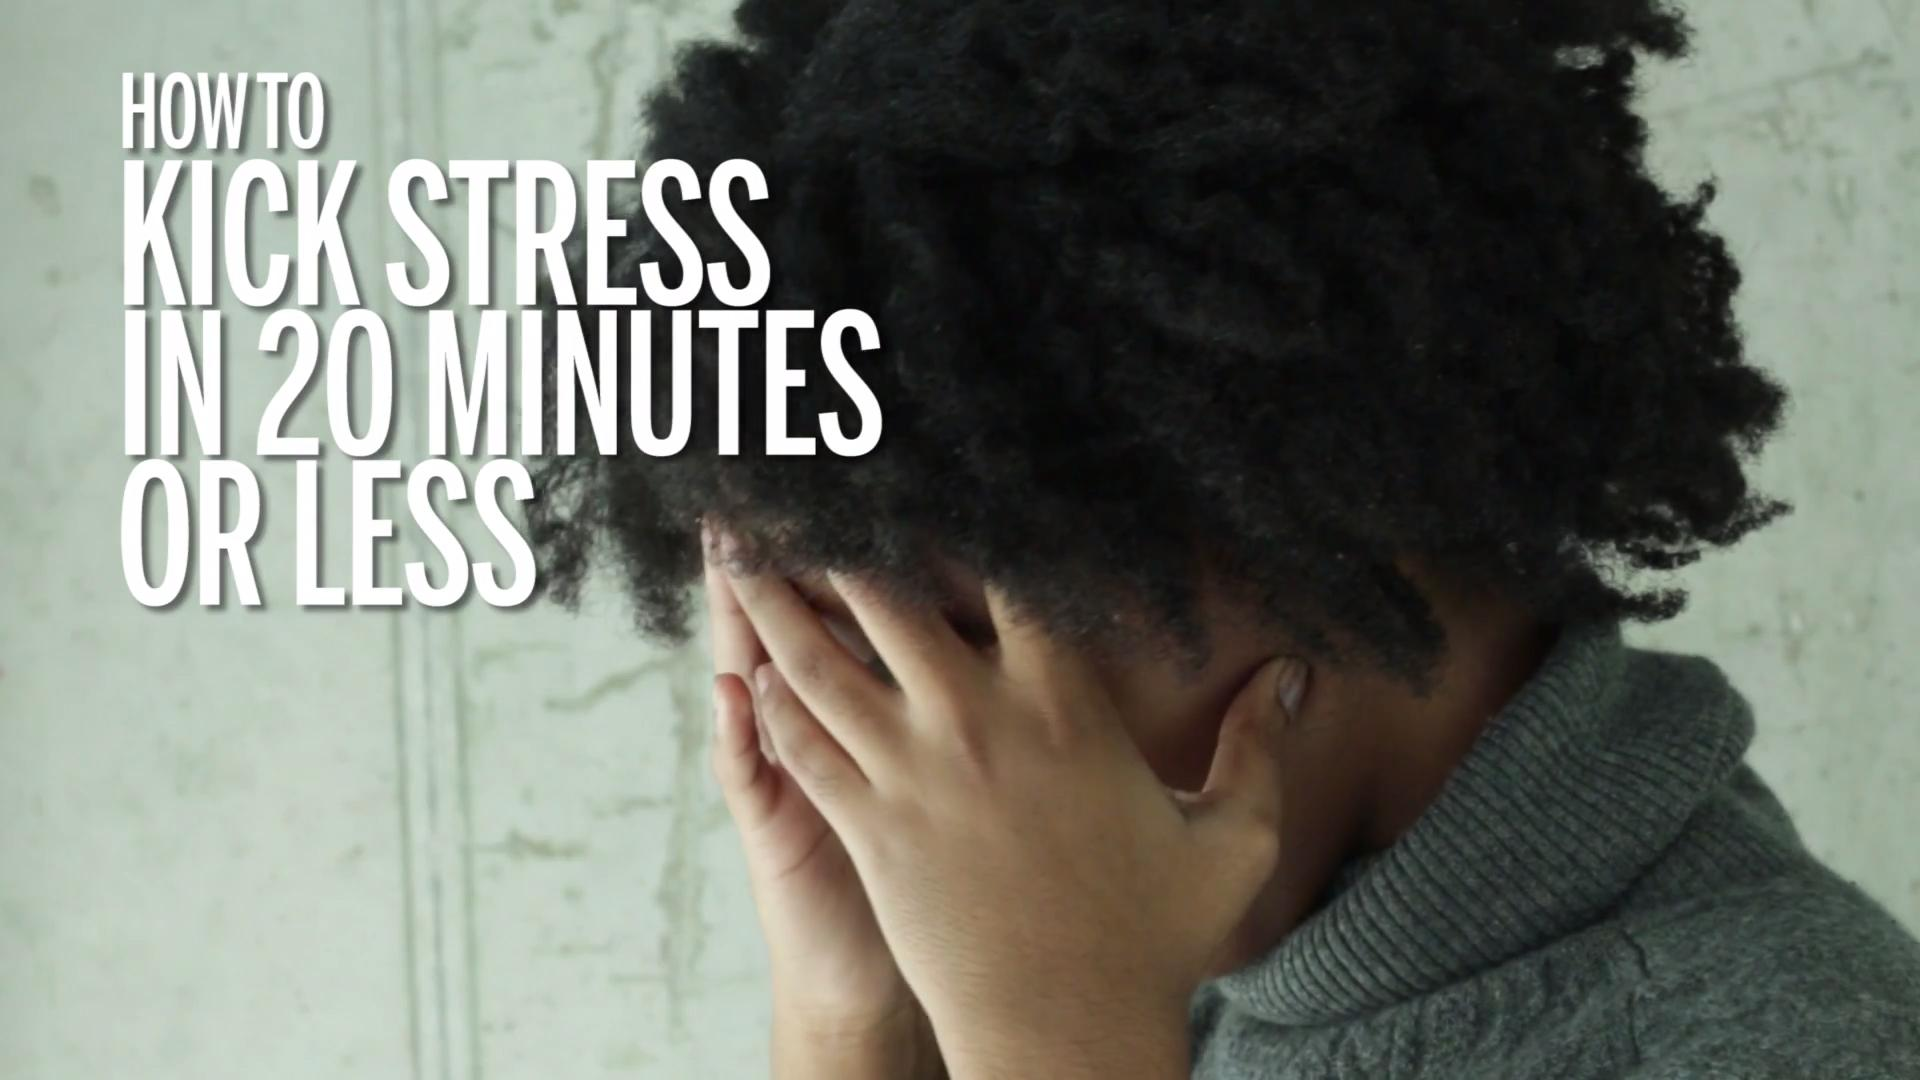 Stress effects